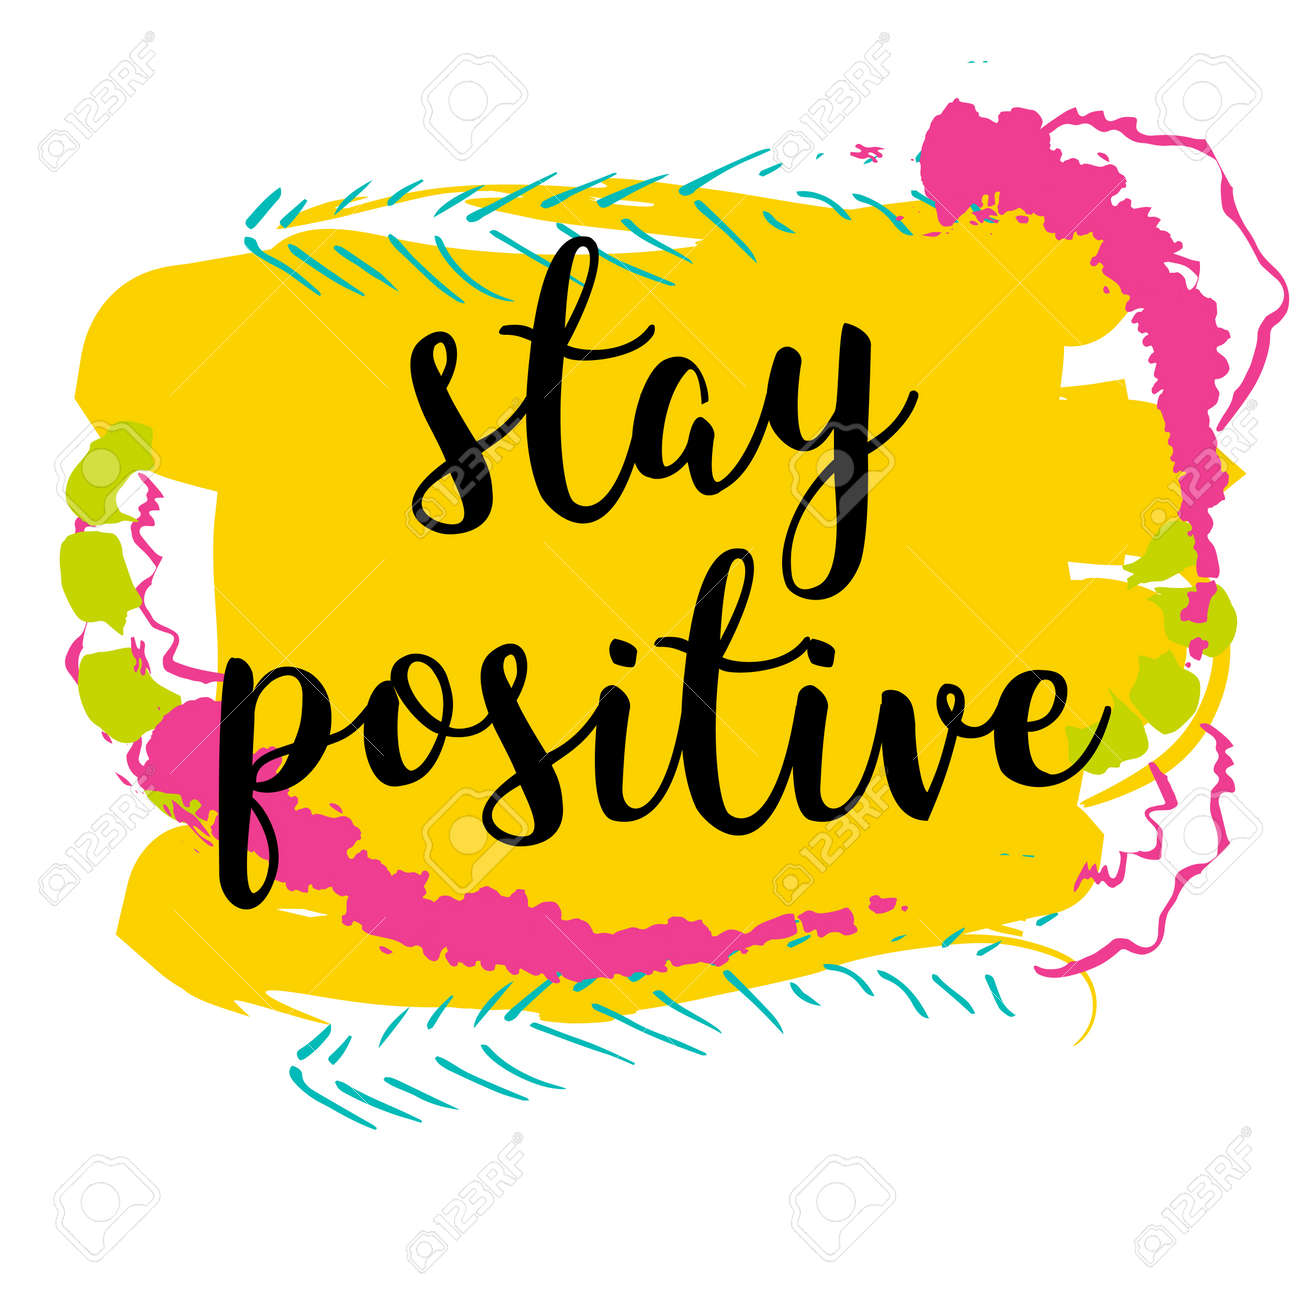 Motivational Quote Stay Positive. Concept Image Poster For Wall ...